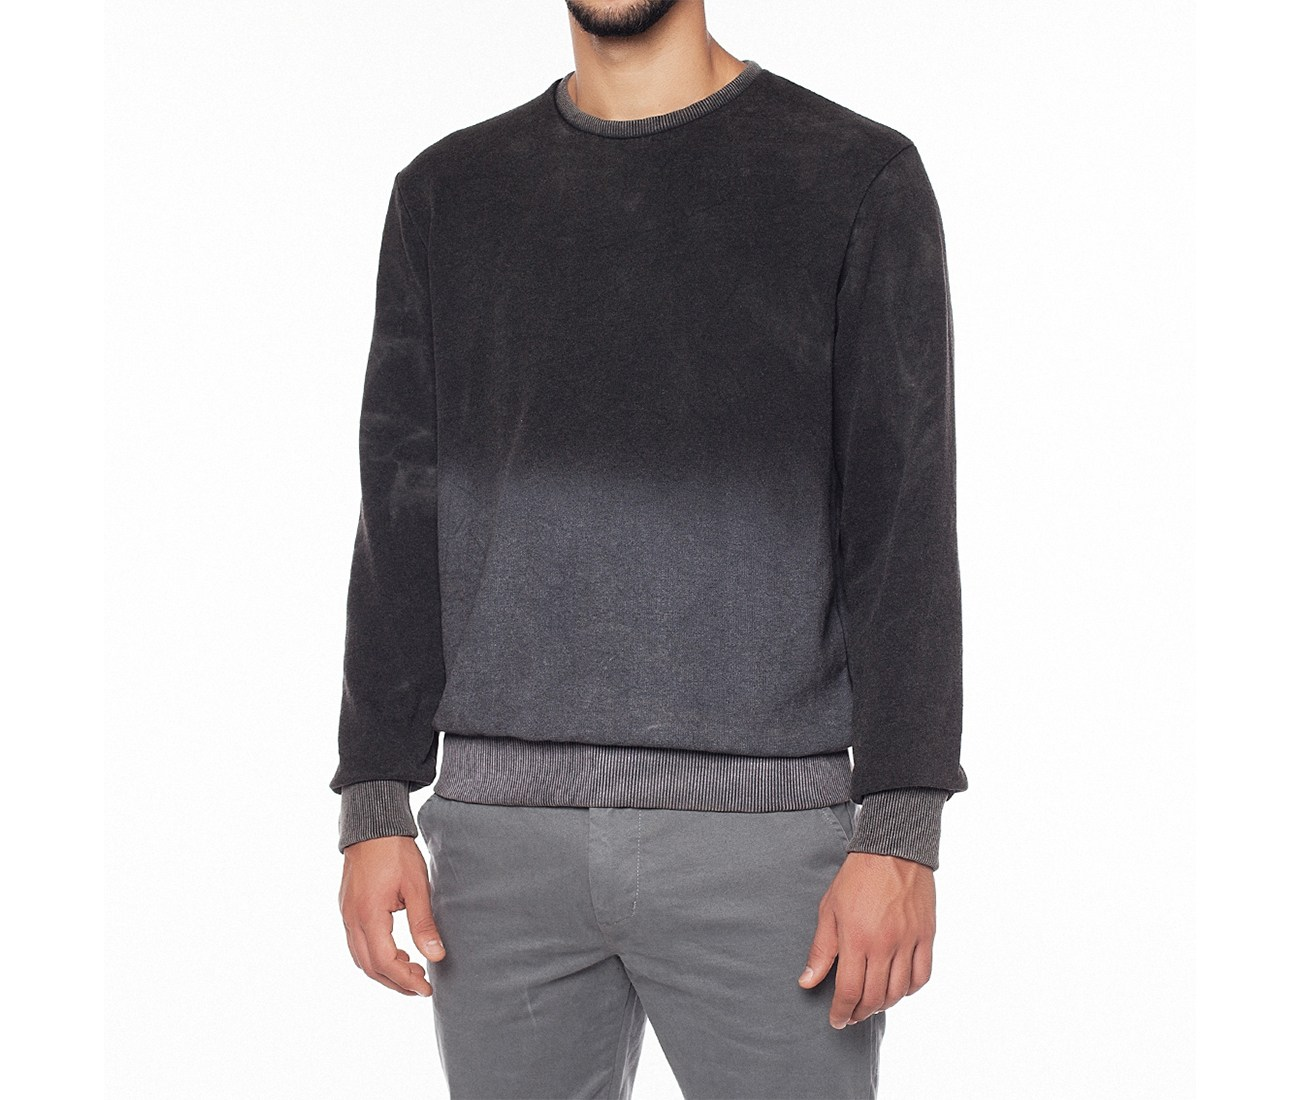 Dip Dye Black Cotton Sweatshirt by the Project Garments